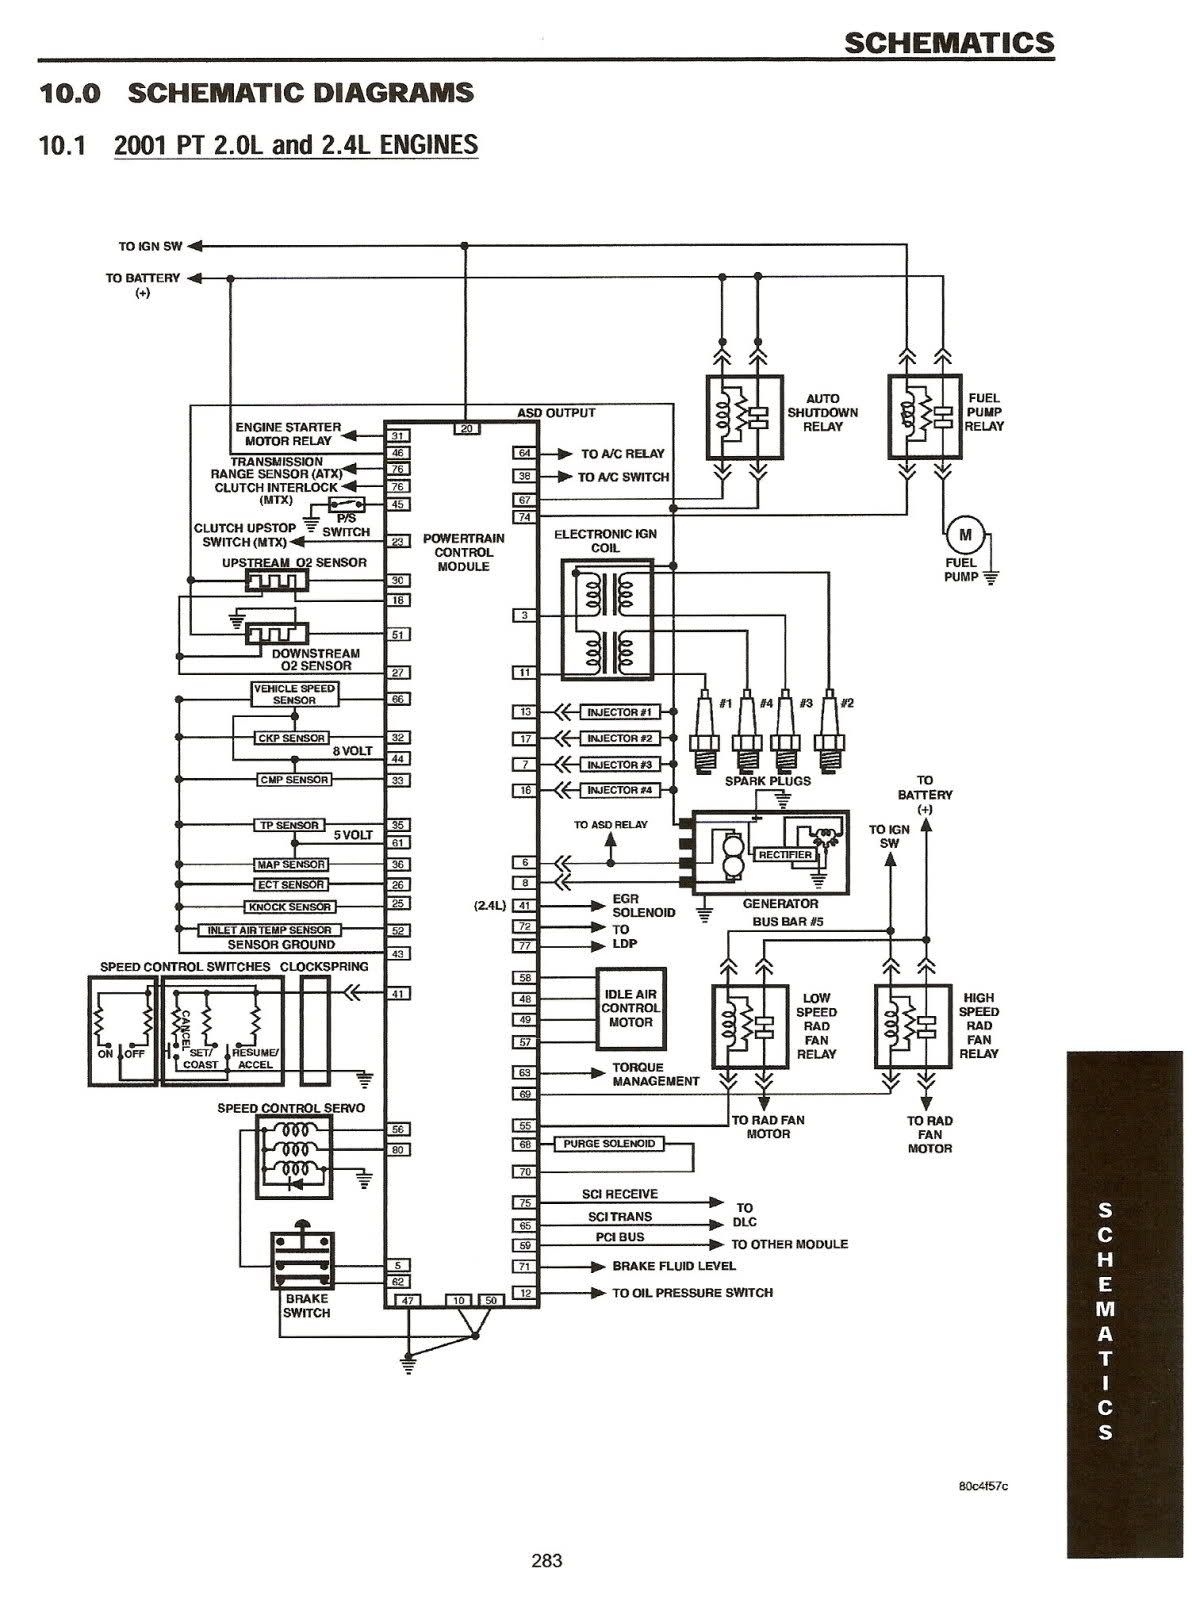 2001 pt cruiser wiring diagram | free wiring diagram 2002 pt cruiser wiring diagram pdf